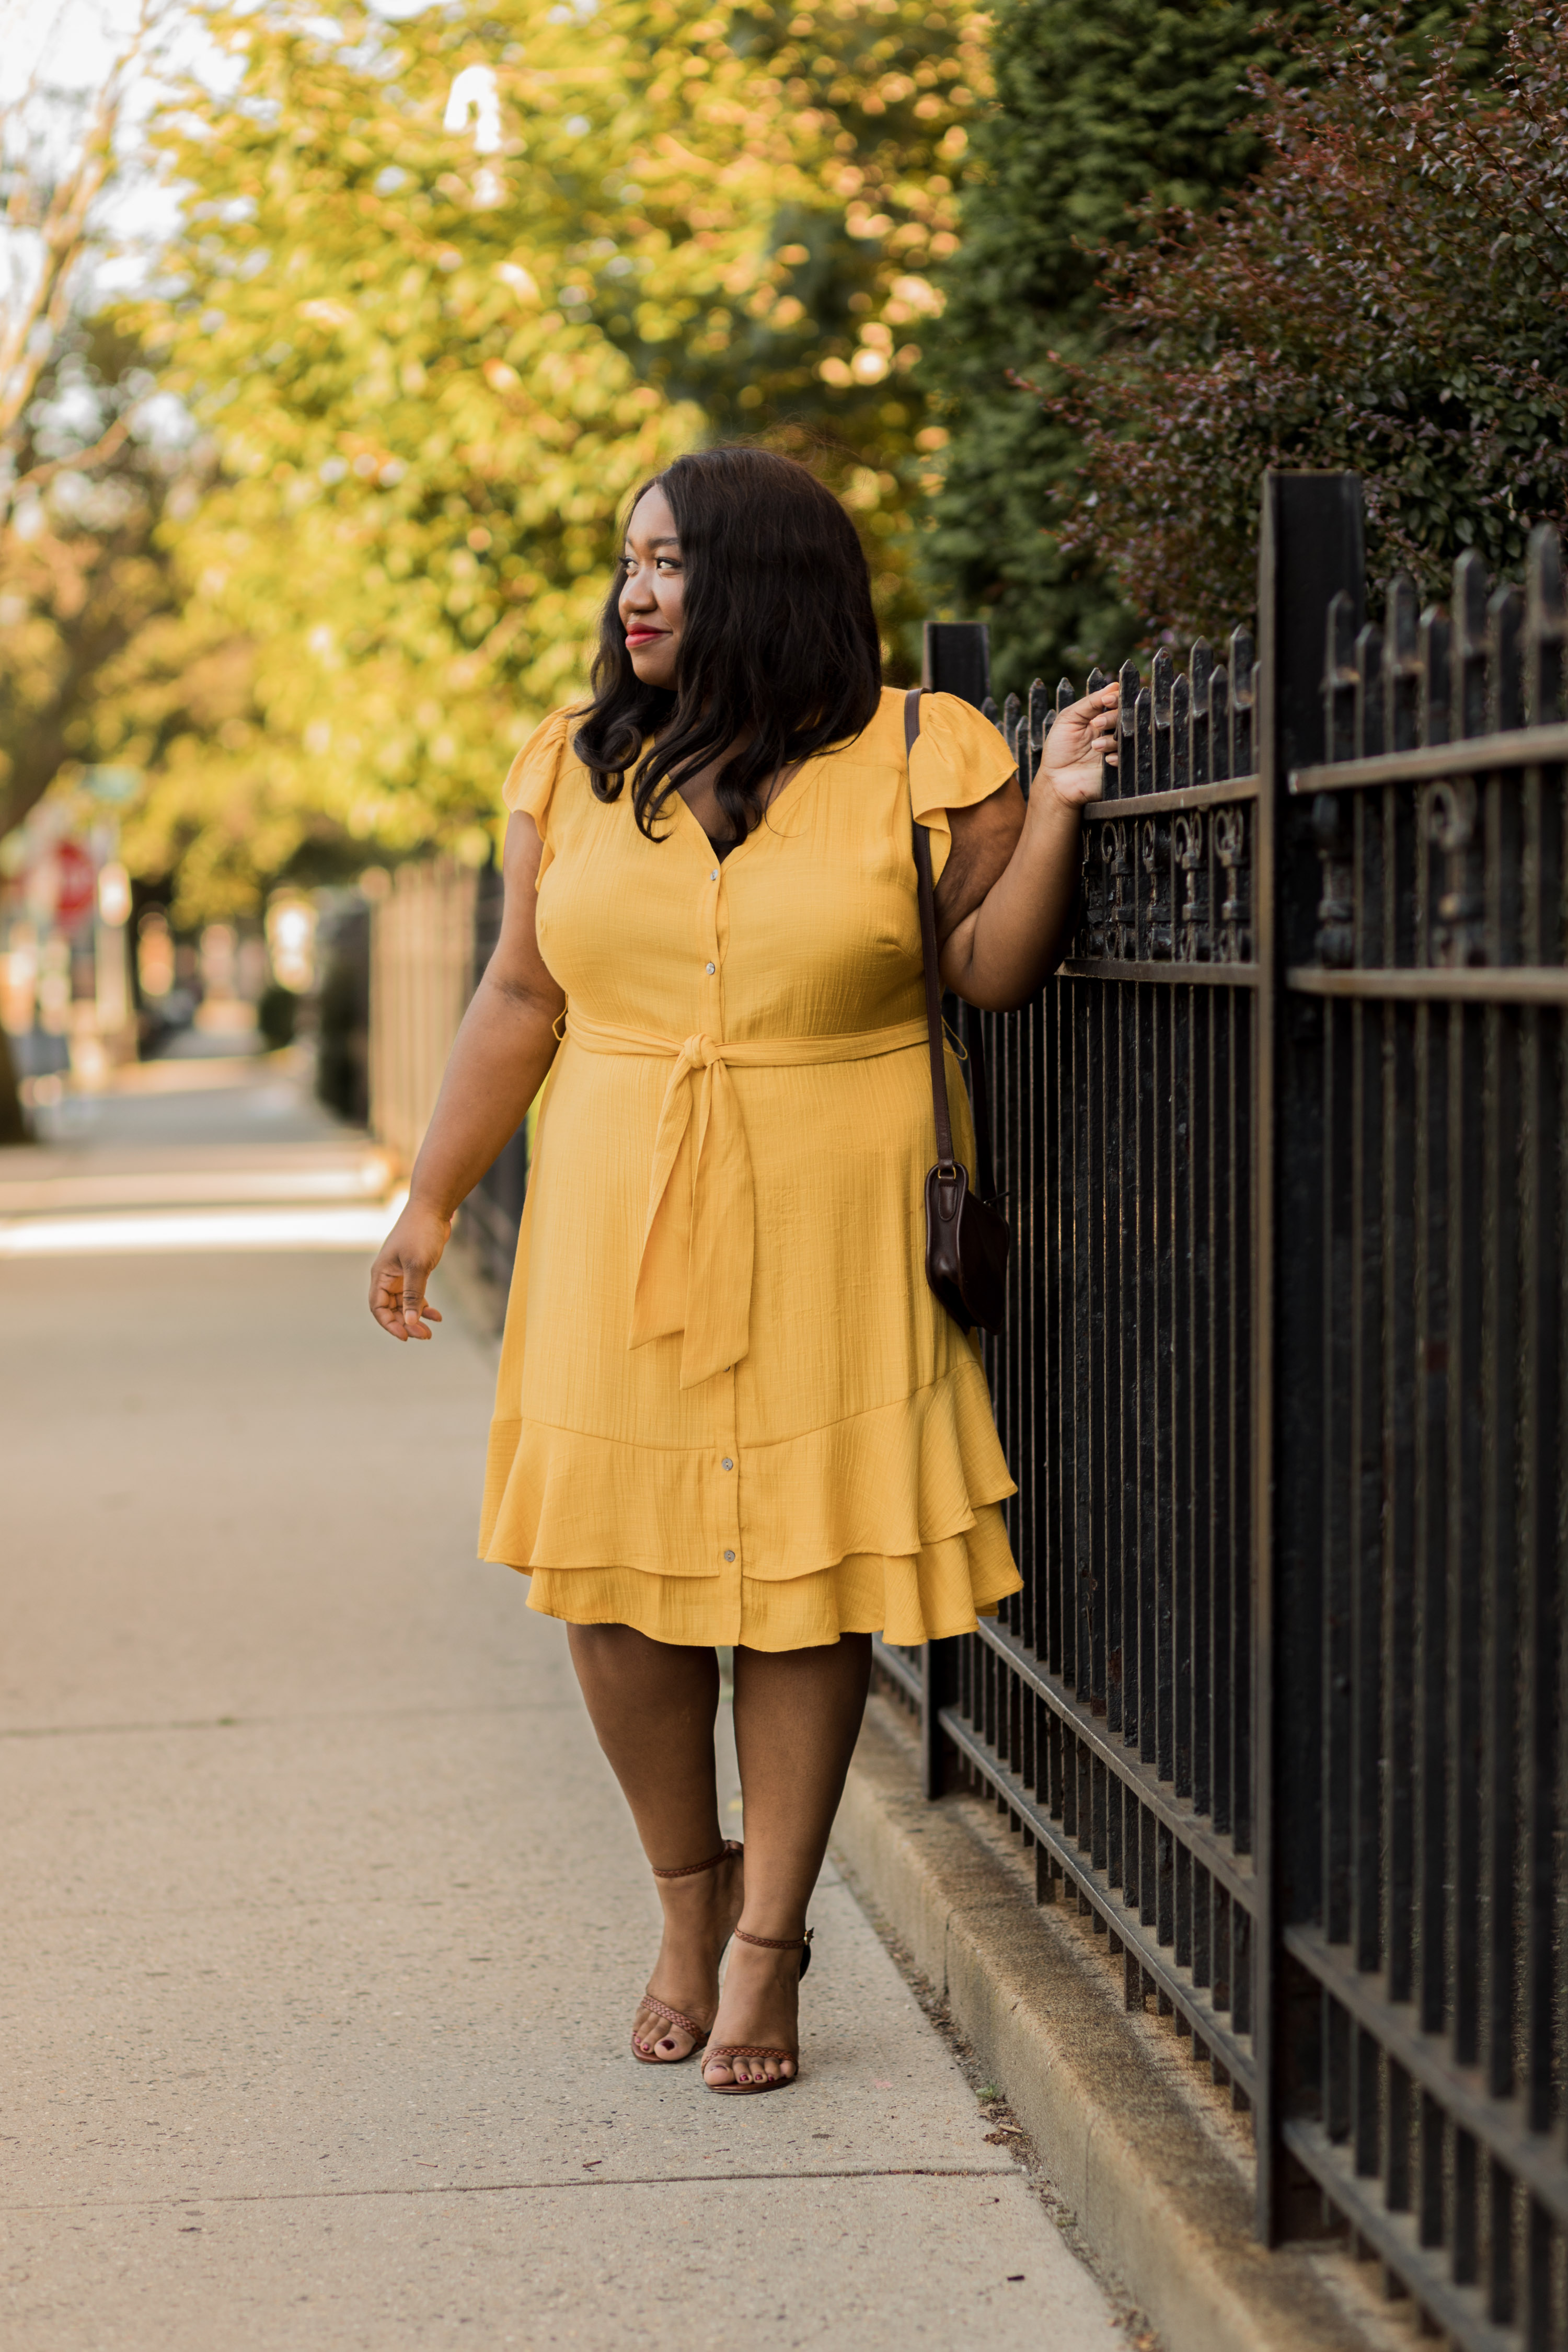 plus-size-yellow-summer-dress-outfit-idea-curvy-women - Shapely Chic ...